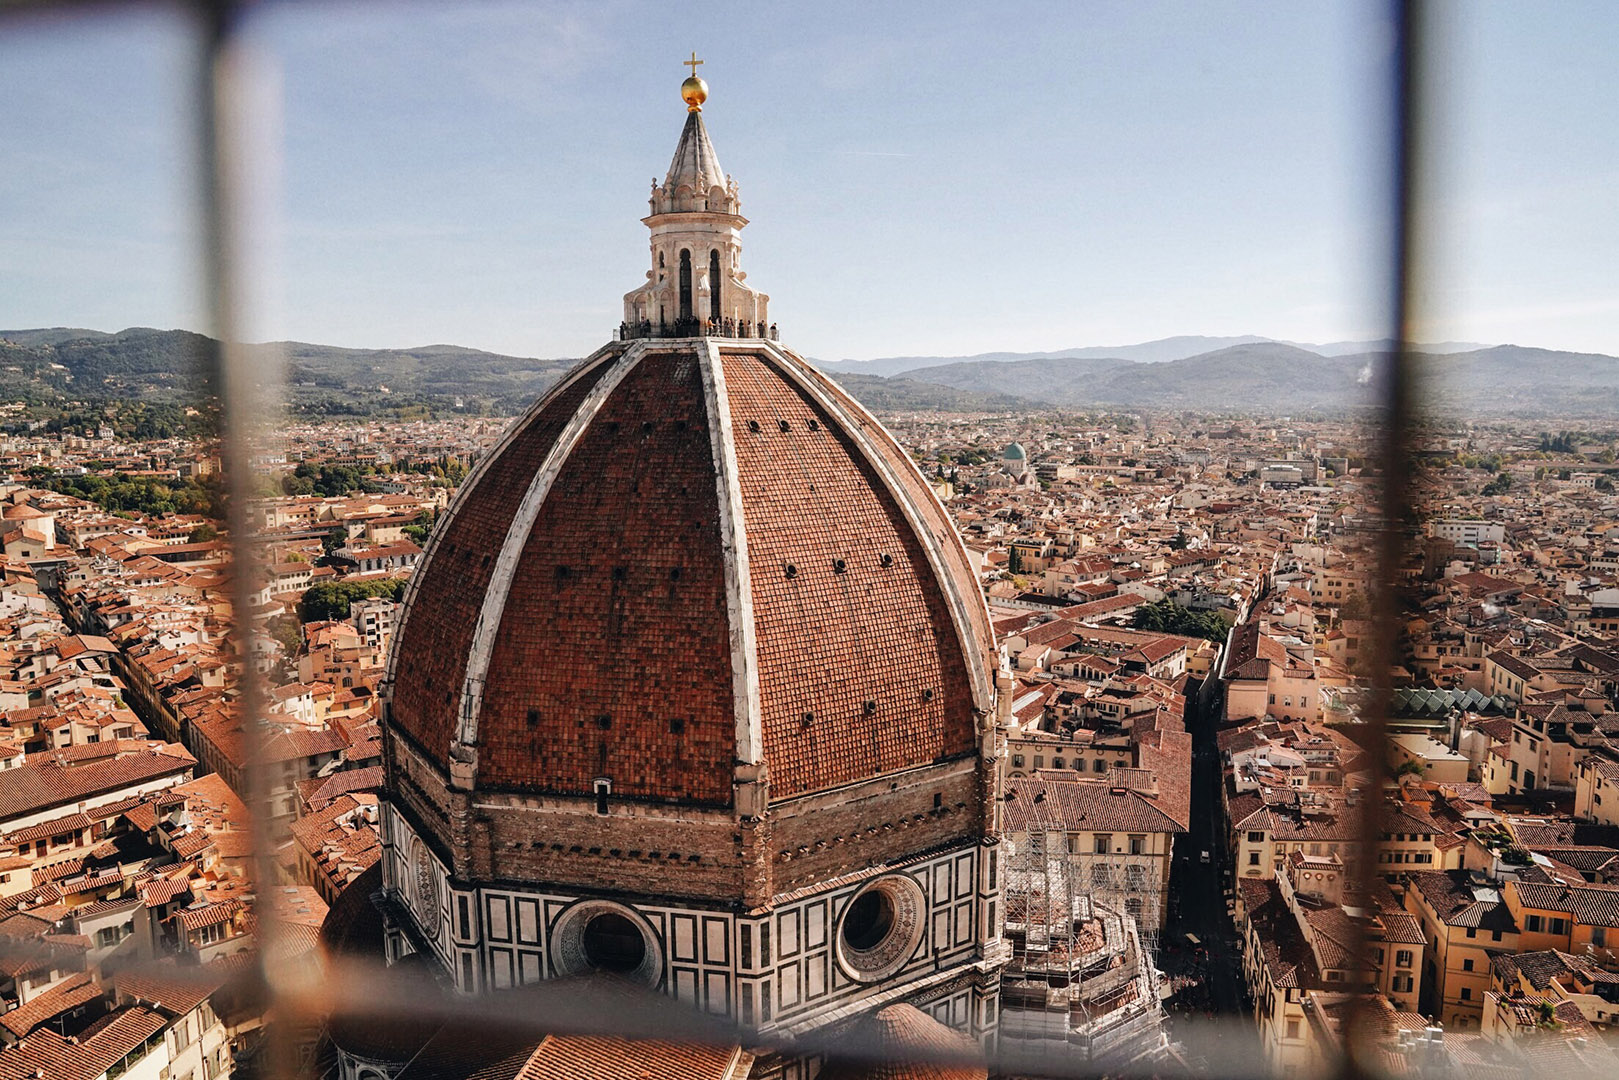 View of the Dome from Giotto's Bell Tower. Gorgeous view, minus this cage.